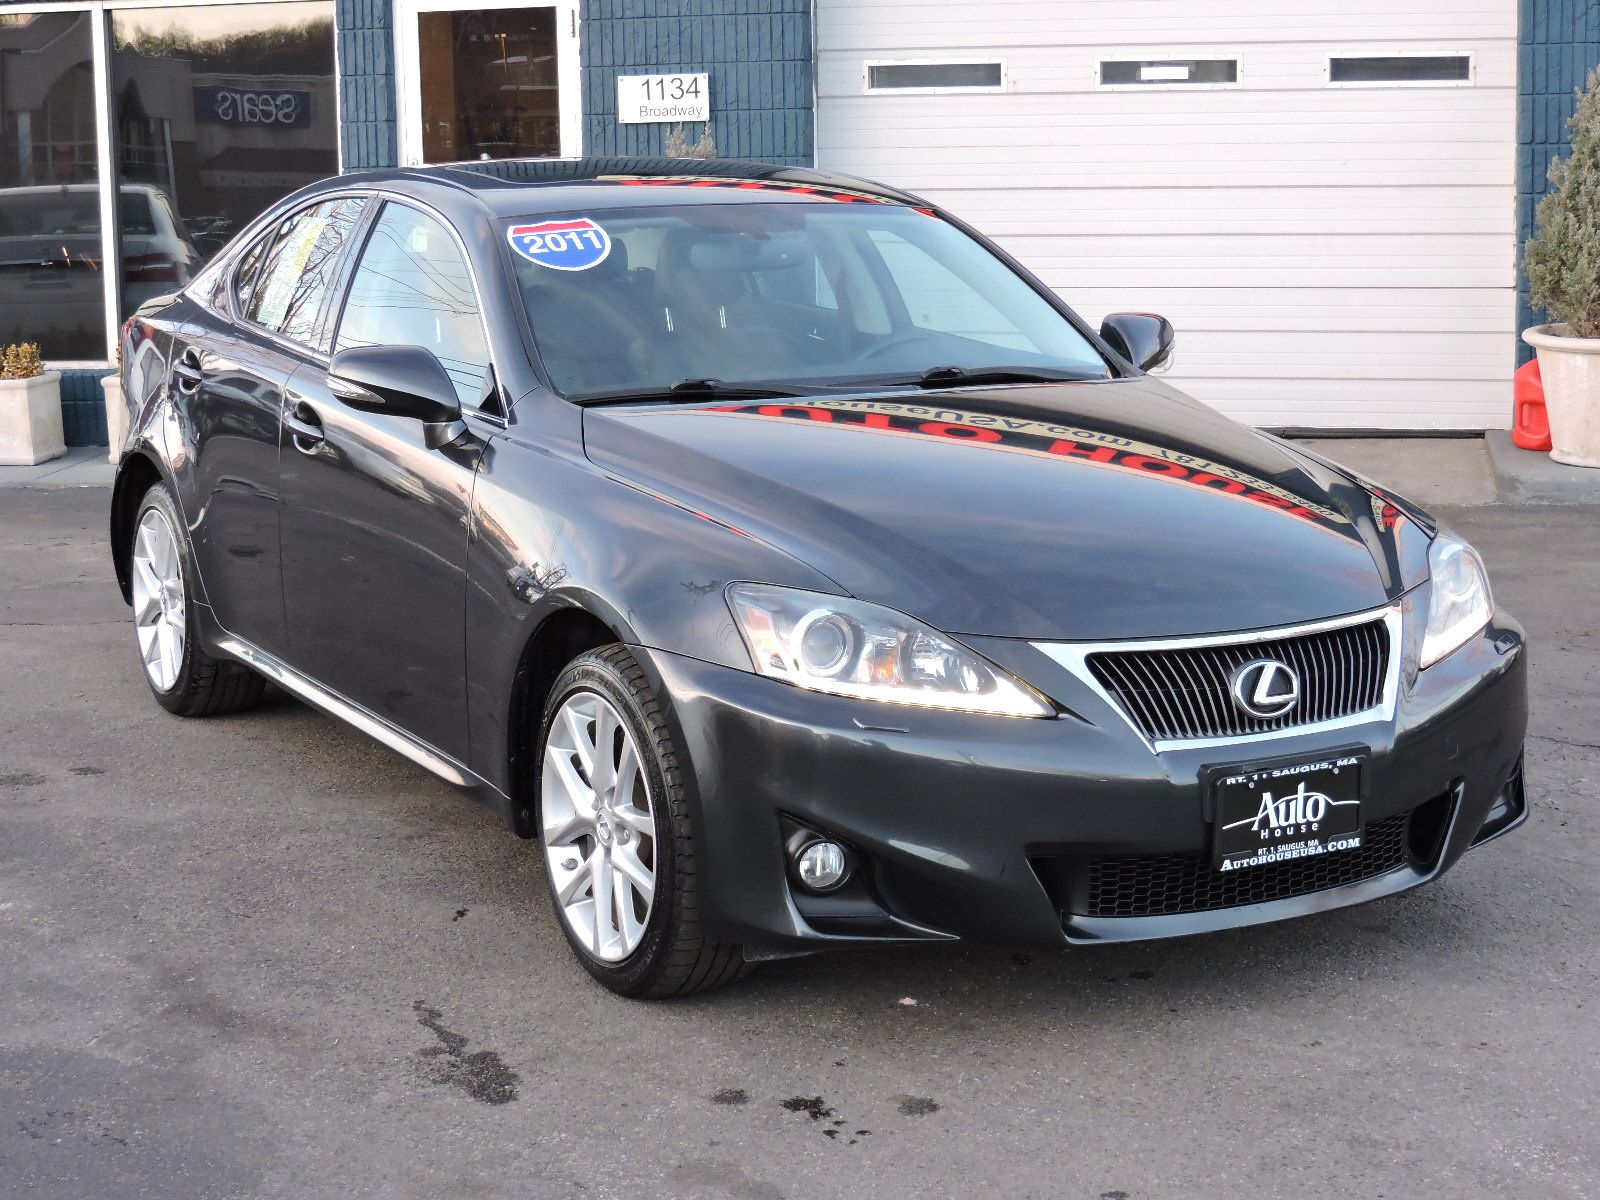 http://autohouseusa.com/uimages/vehicle/3947895/full/2011-Lexus-IS-350-JTHCE5C2XB5000147-1751.jpeg